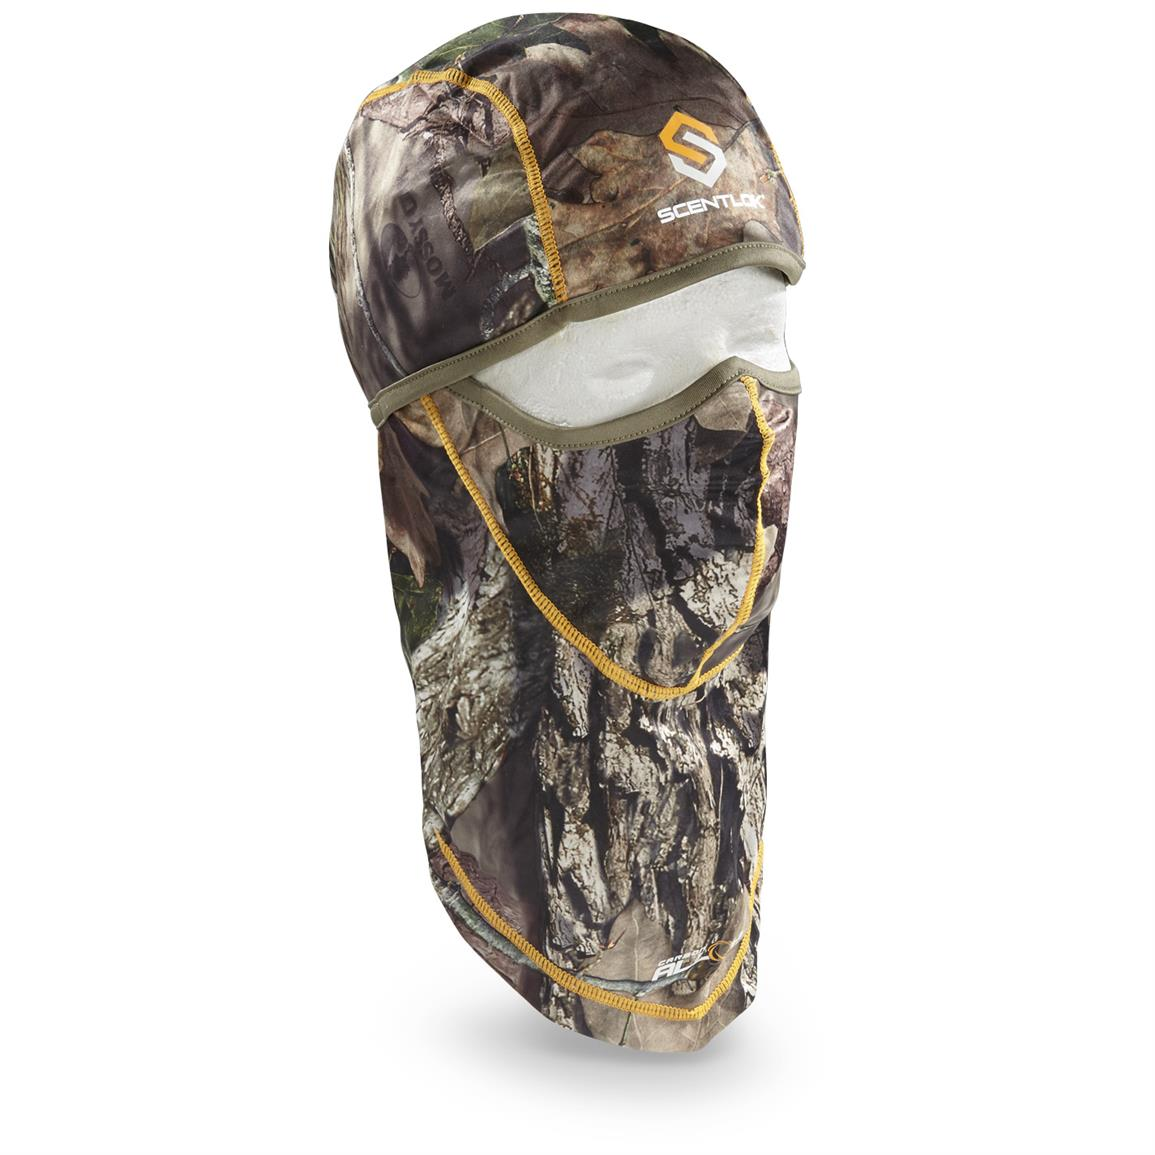 Scentlok Savanna Lightweight Head Cover, Mossy Oak Break-Up Country